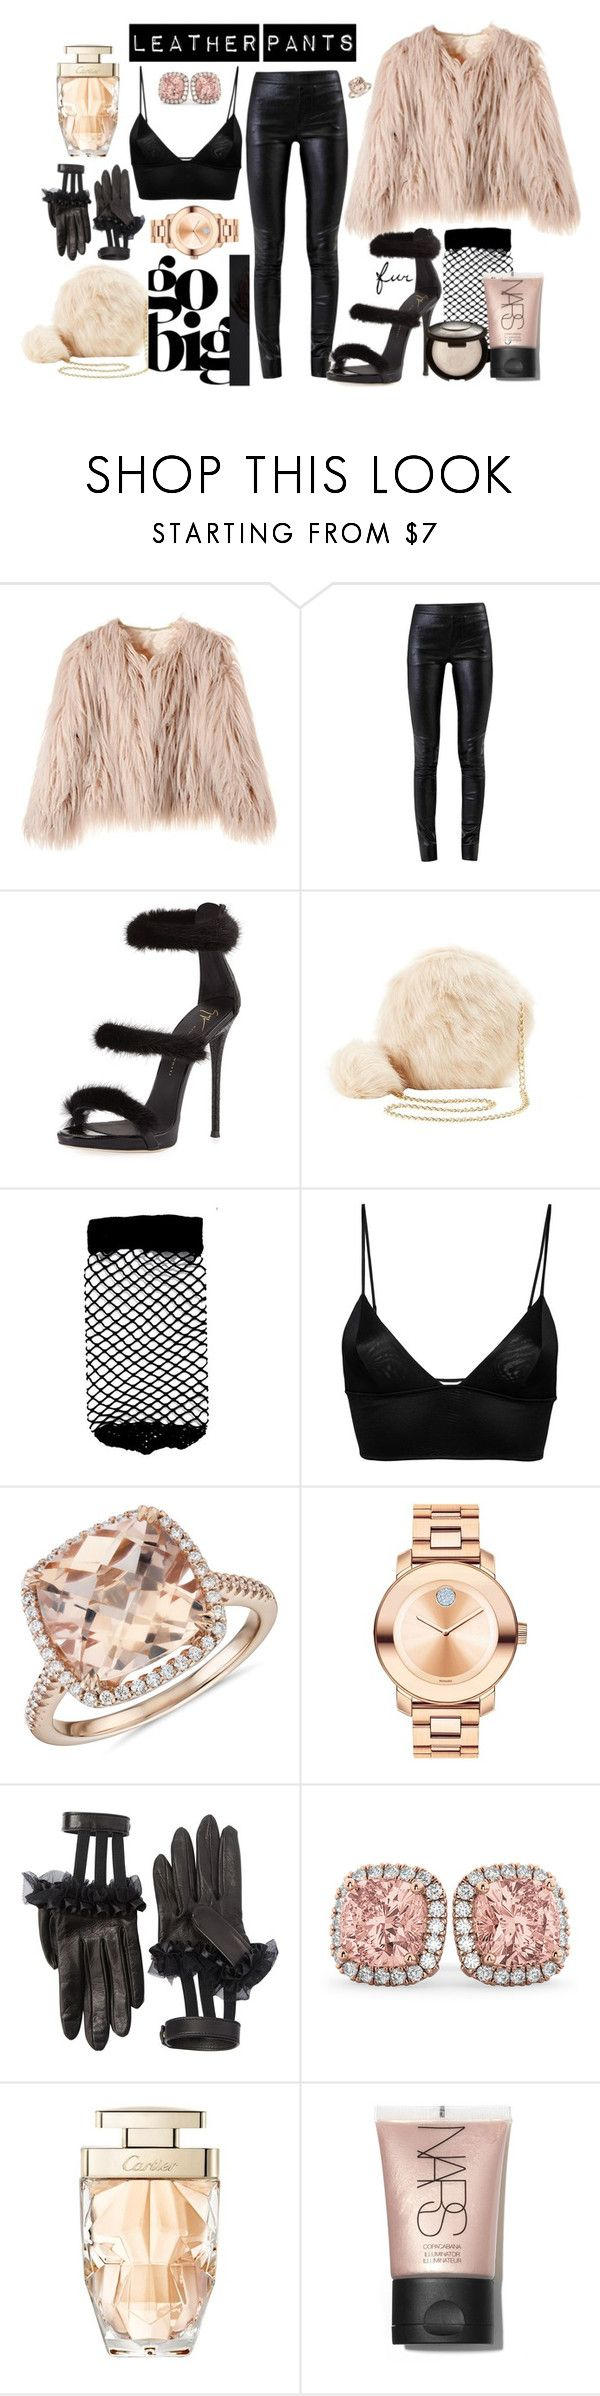 """""""Leather Pants & fur"""" by ccfashionstreet on Polyvore featuring Helmut Lang, Giuseppe Zanotti, Charlotte Russe, ASOS, Fleur du Mal, Blue Nile, Movado, Gucci, Allurez and Cartier"""